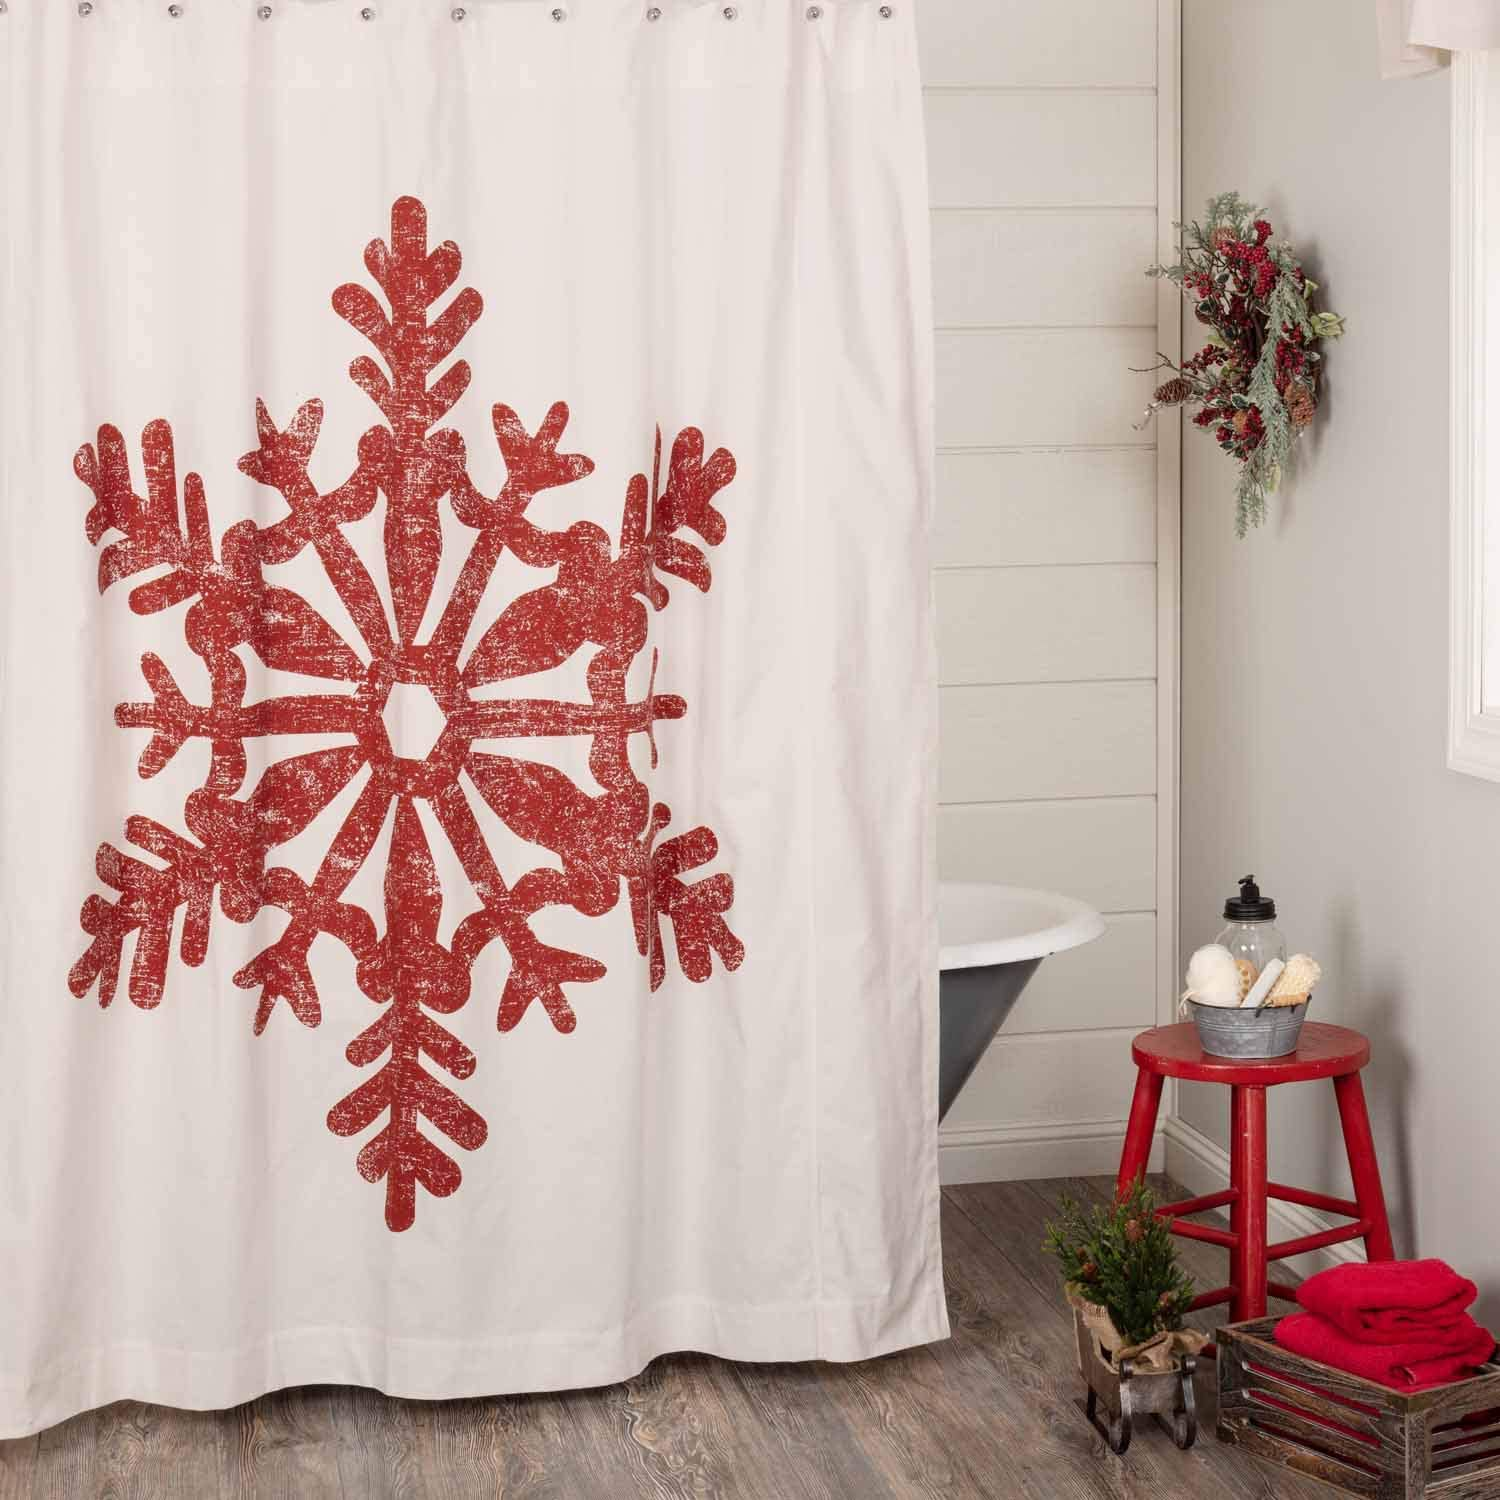 Red Snowflake Christmas Shower Curtain, 72